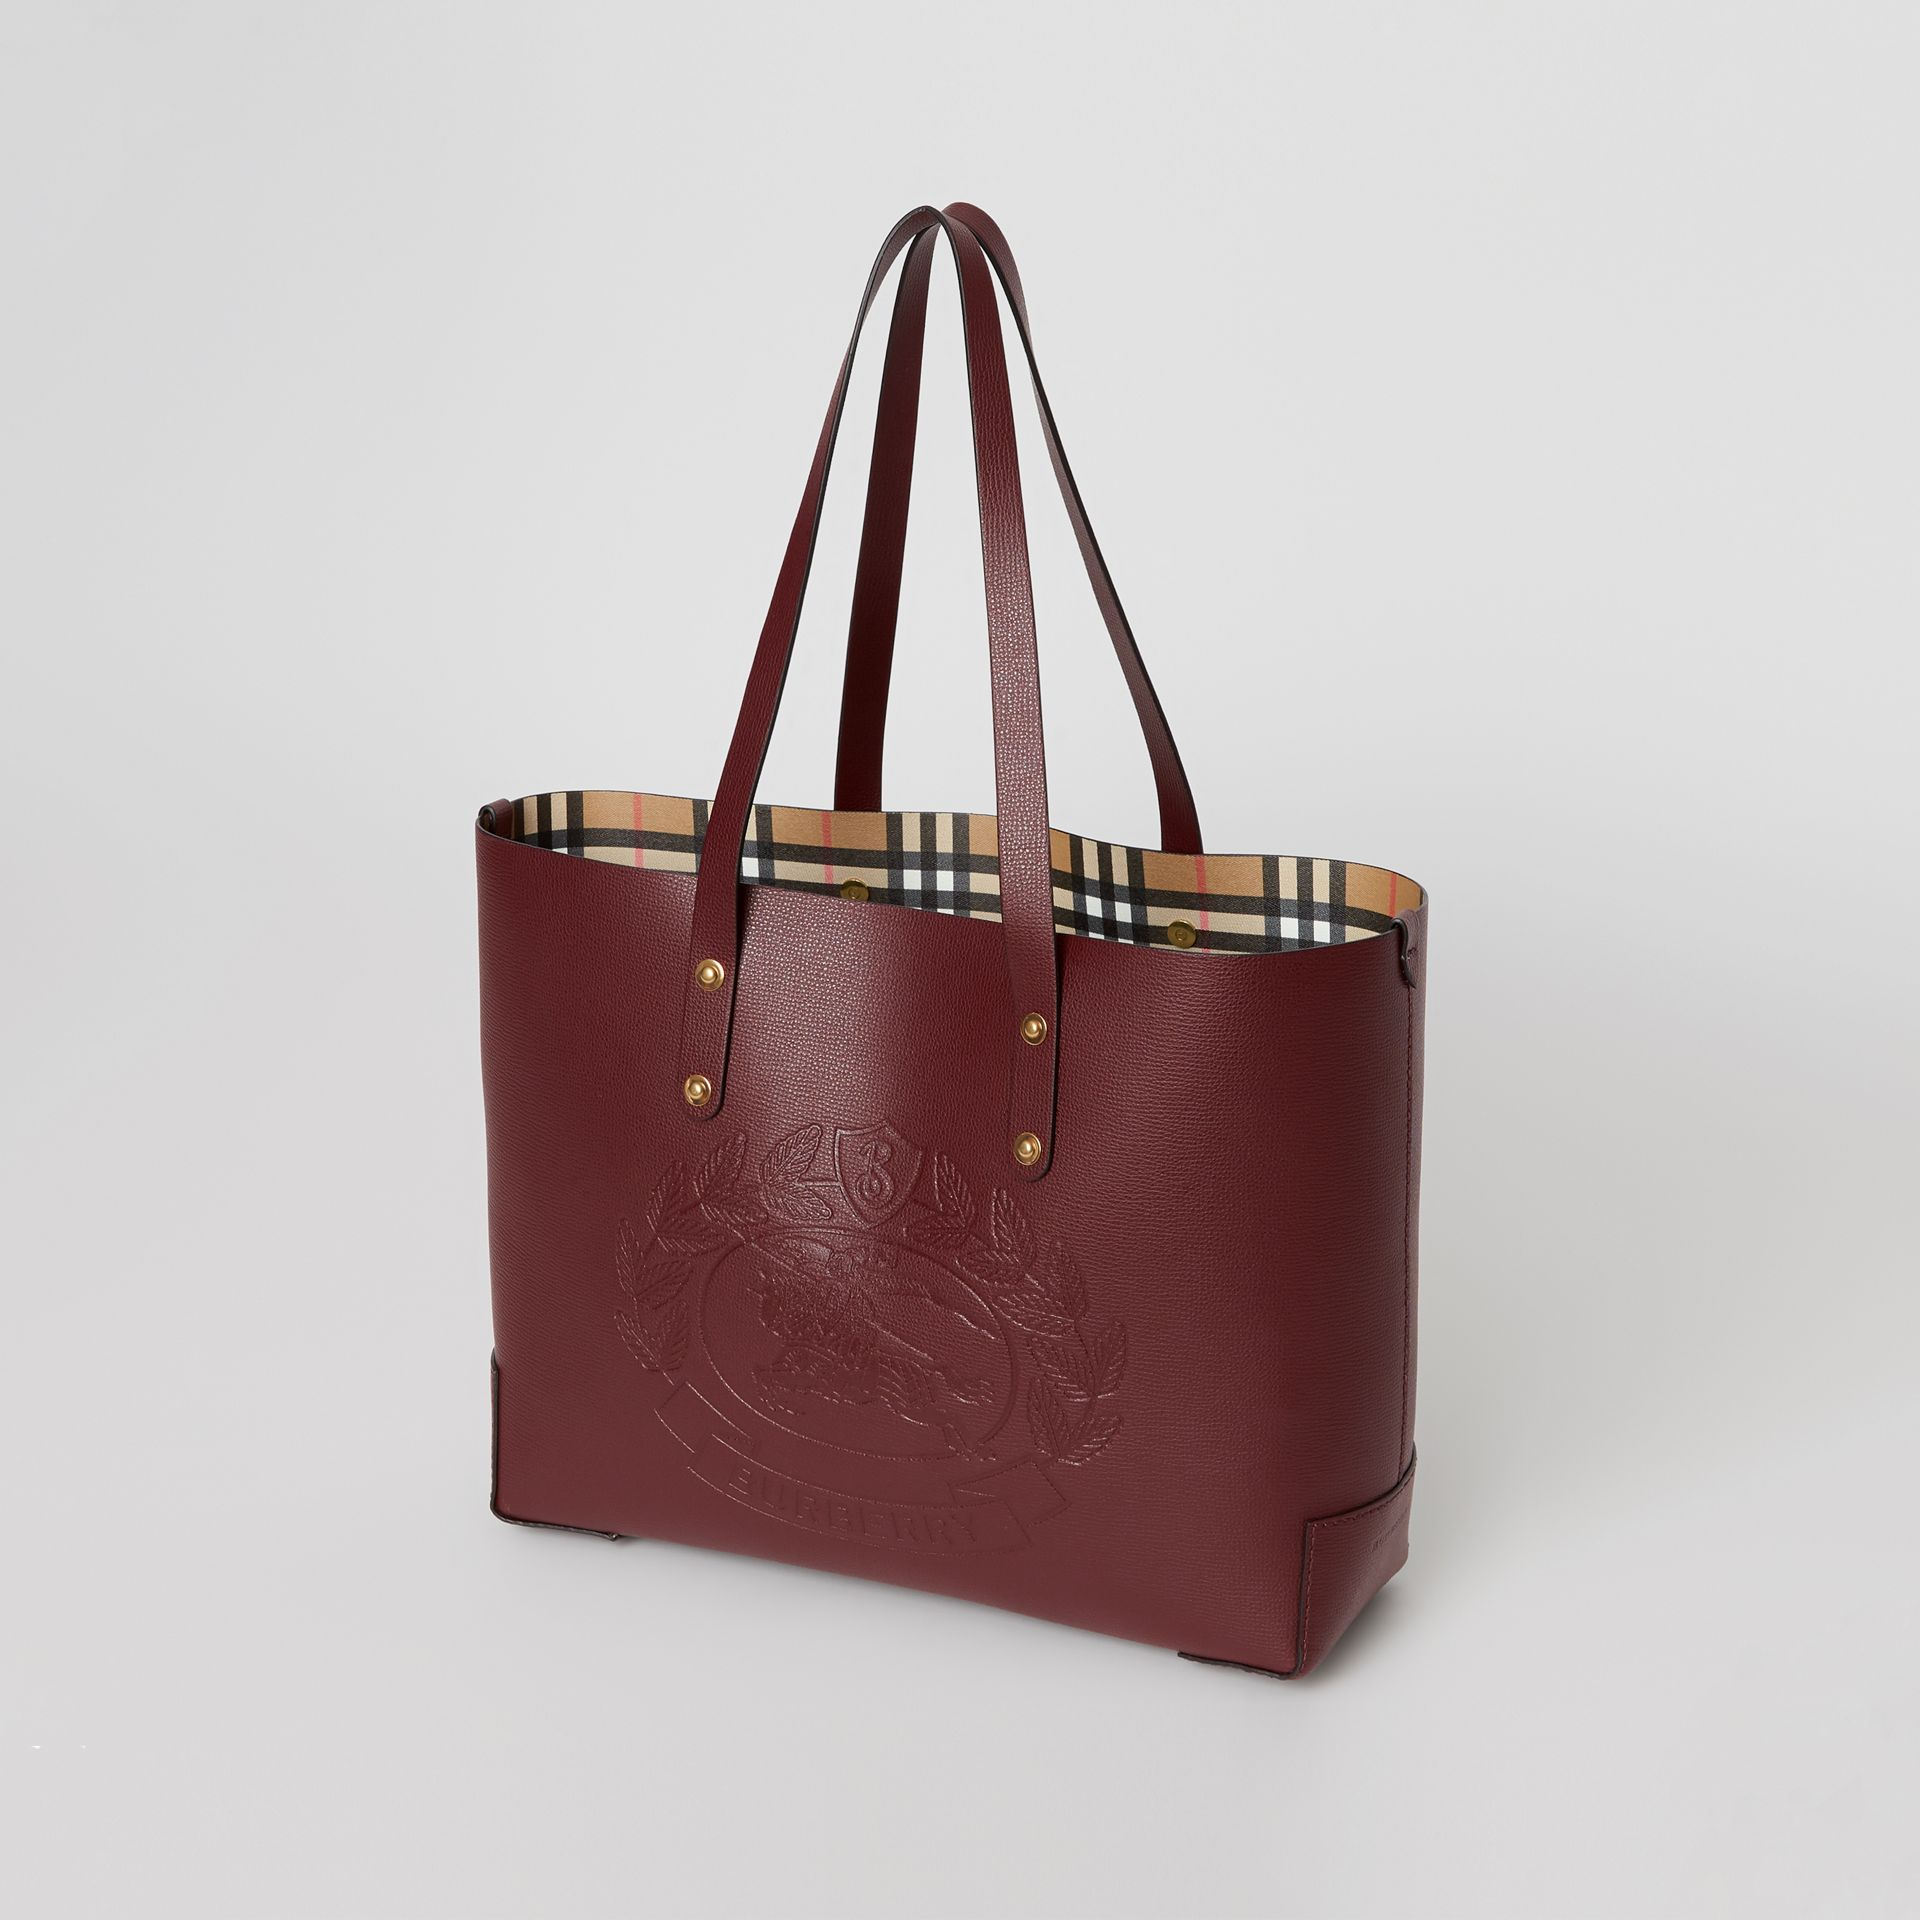 Small Embossed Crest Leather Tote in Burgundy - Women | Burberry - gallery image 4